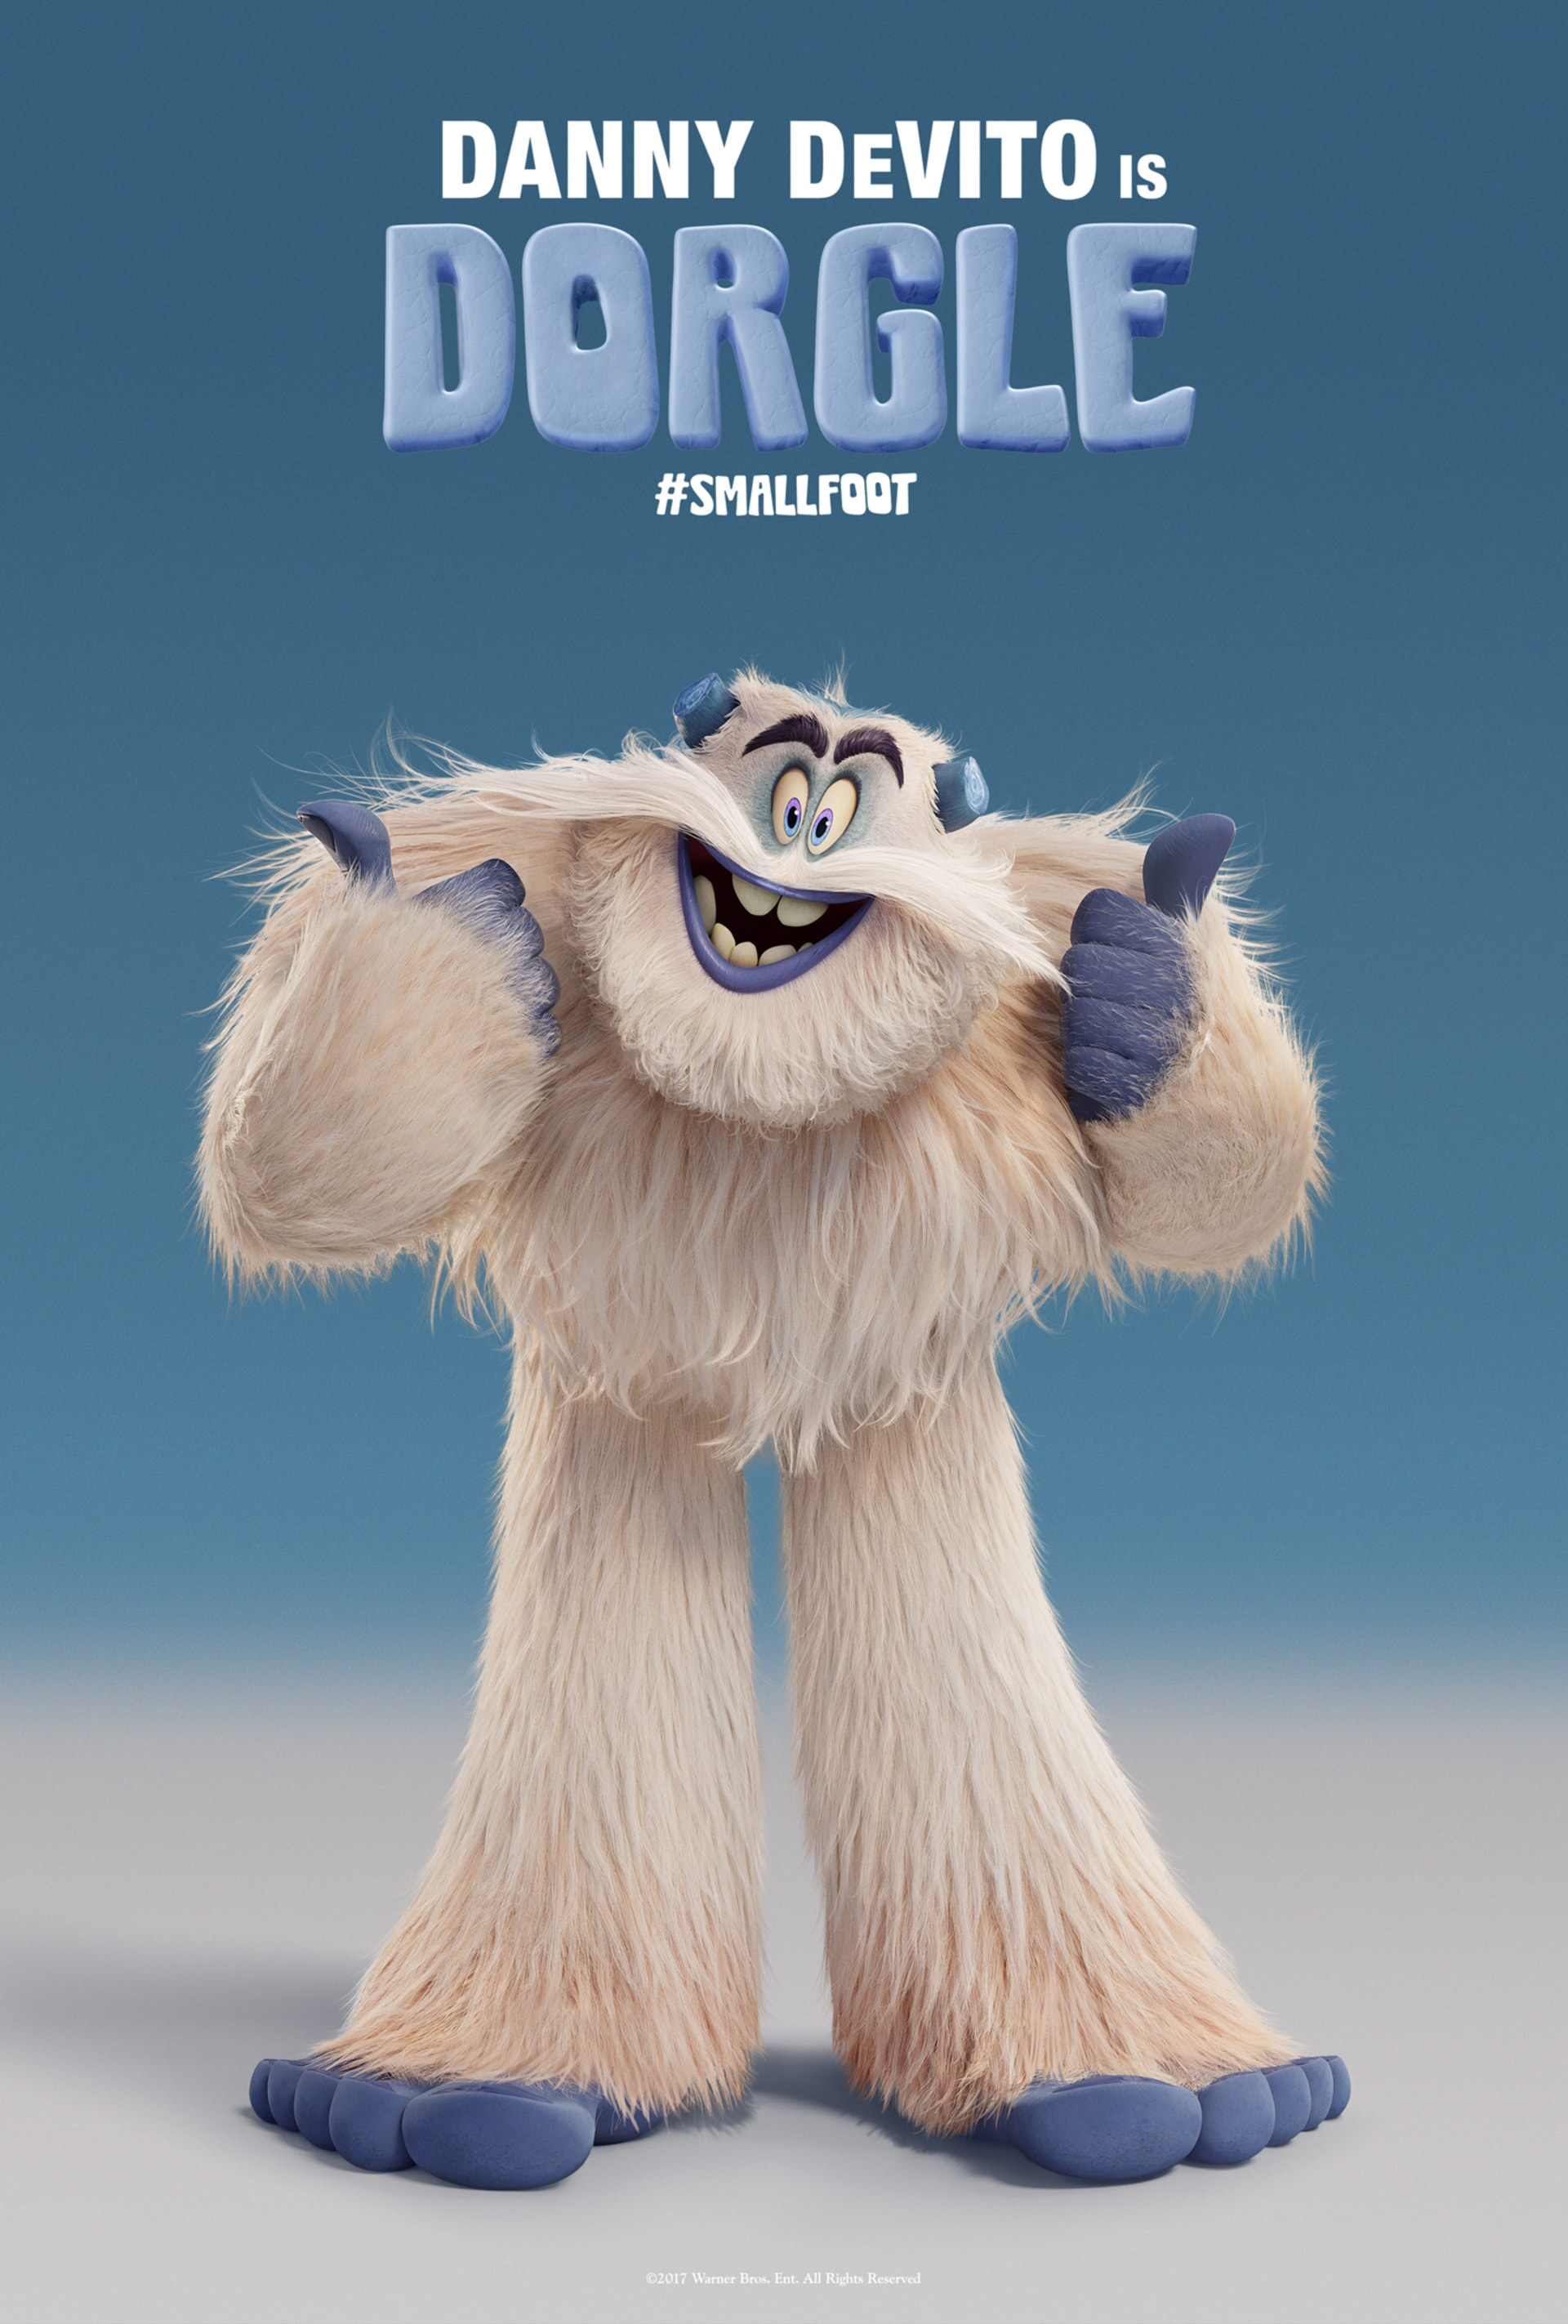 Dorgle character art poster